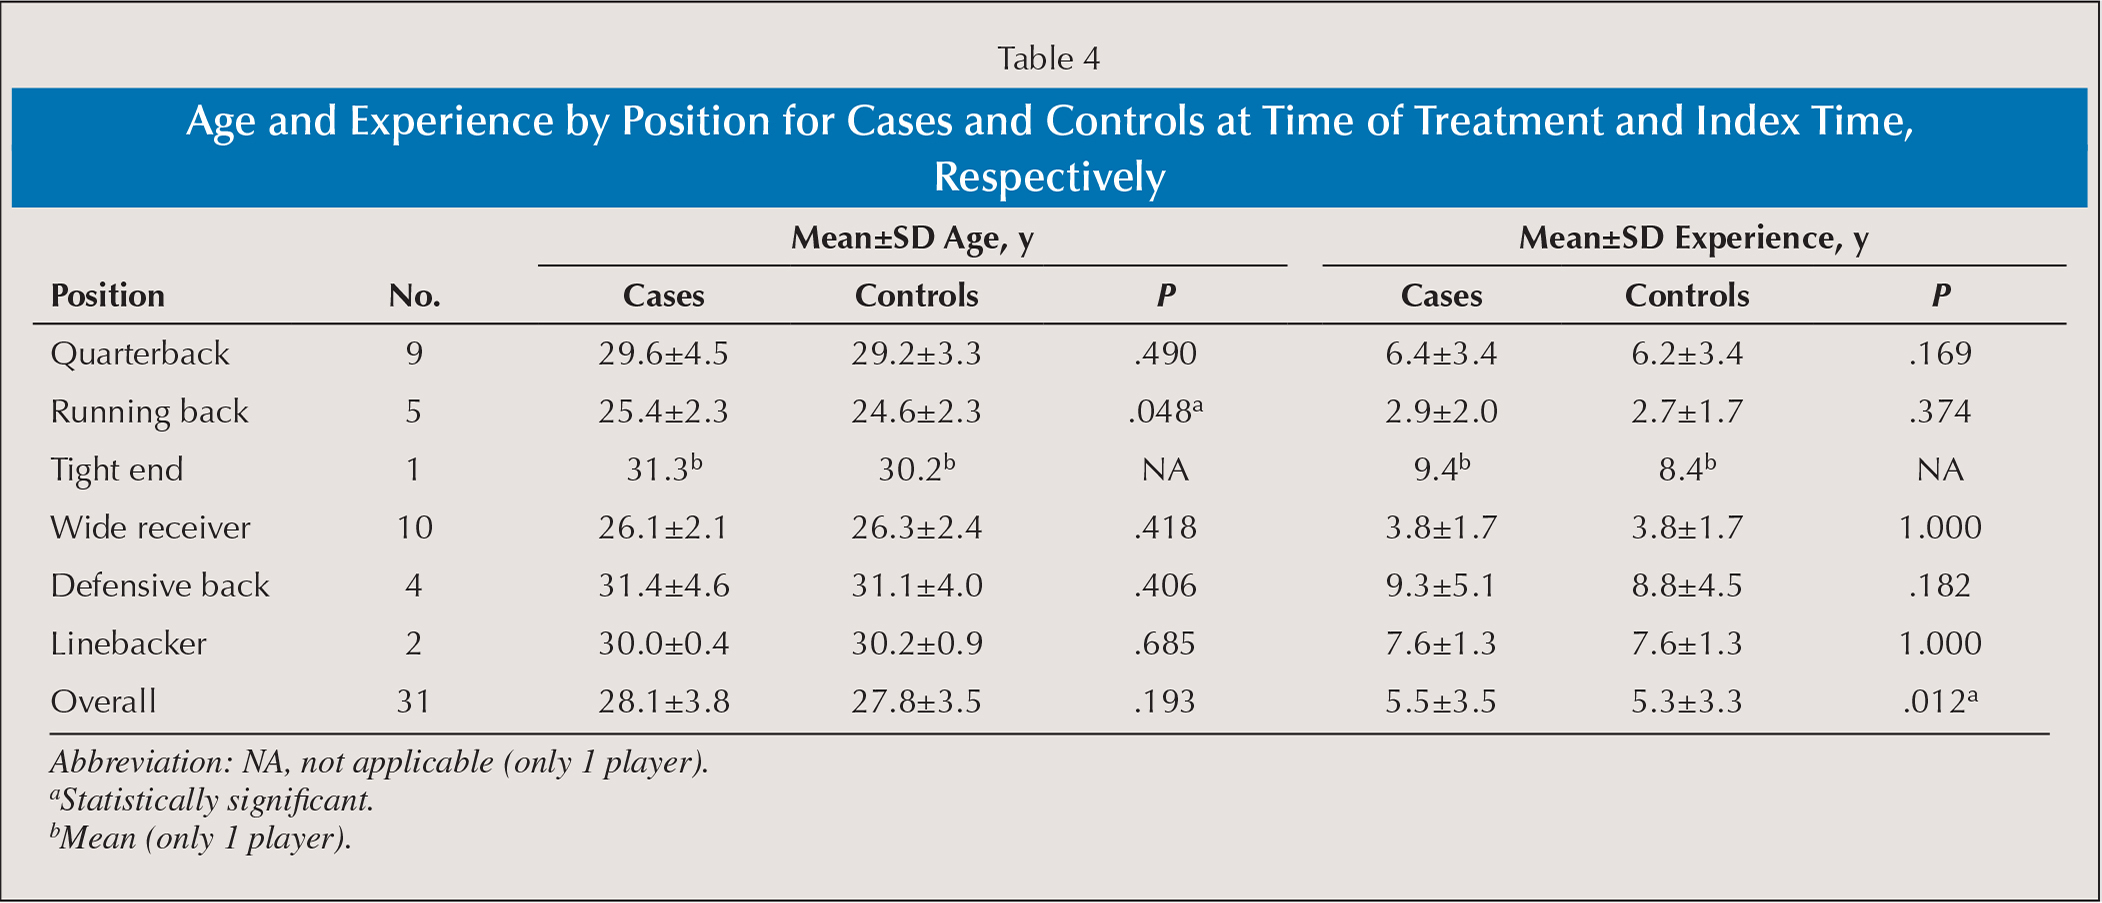 Age and Experience by Position for Cases and Controls at Time of Treatment and Index Time, Respectively